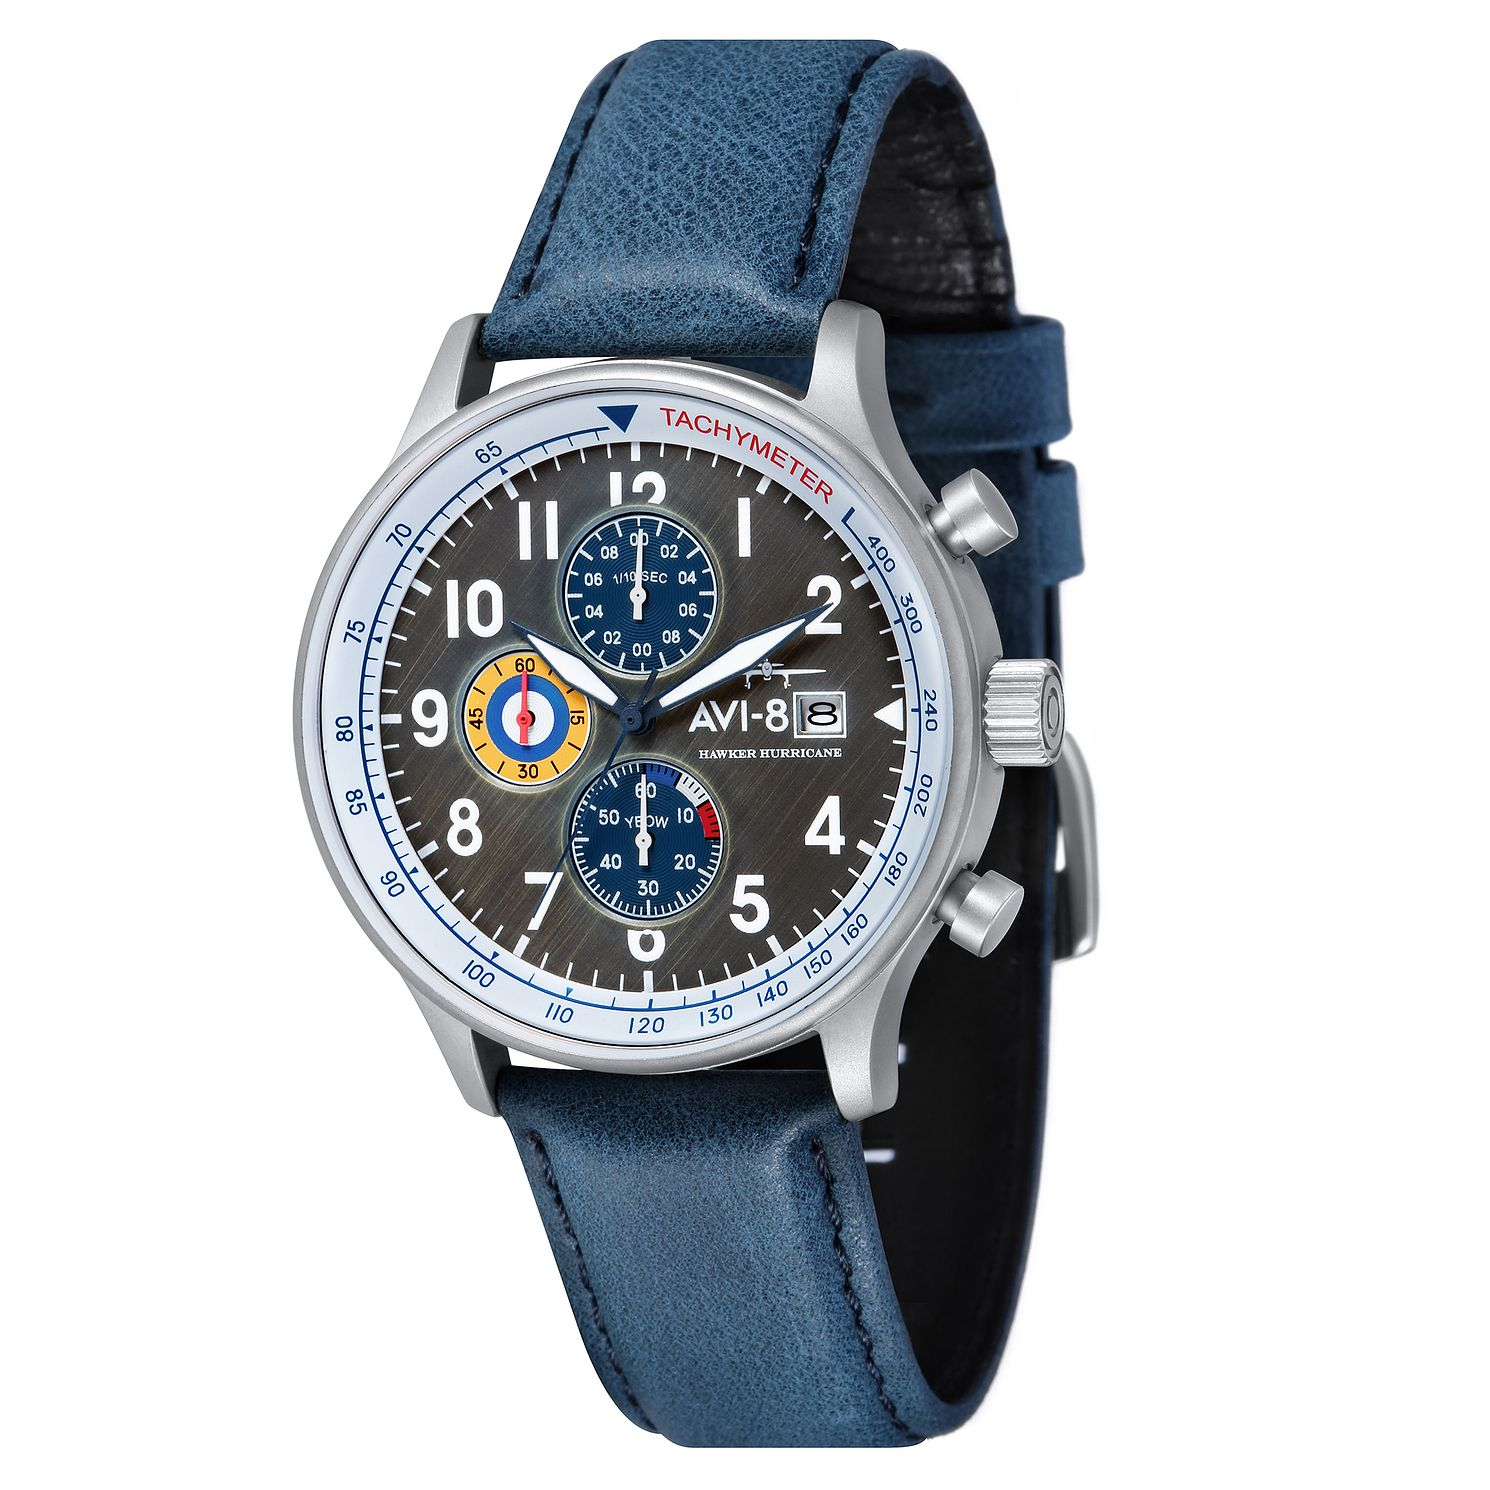 AVI-8 Men's Hawker Hurricane Blue Leather Strap Watch - Product number 8901260